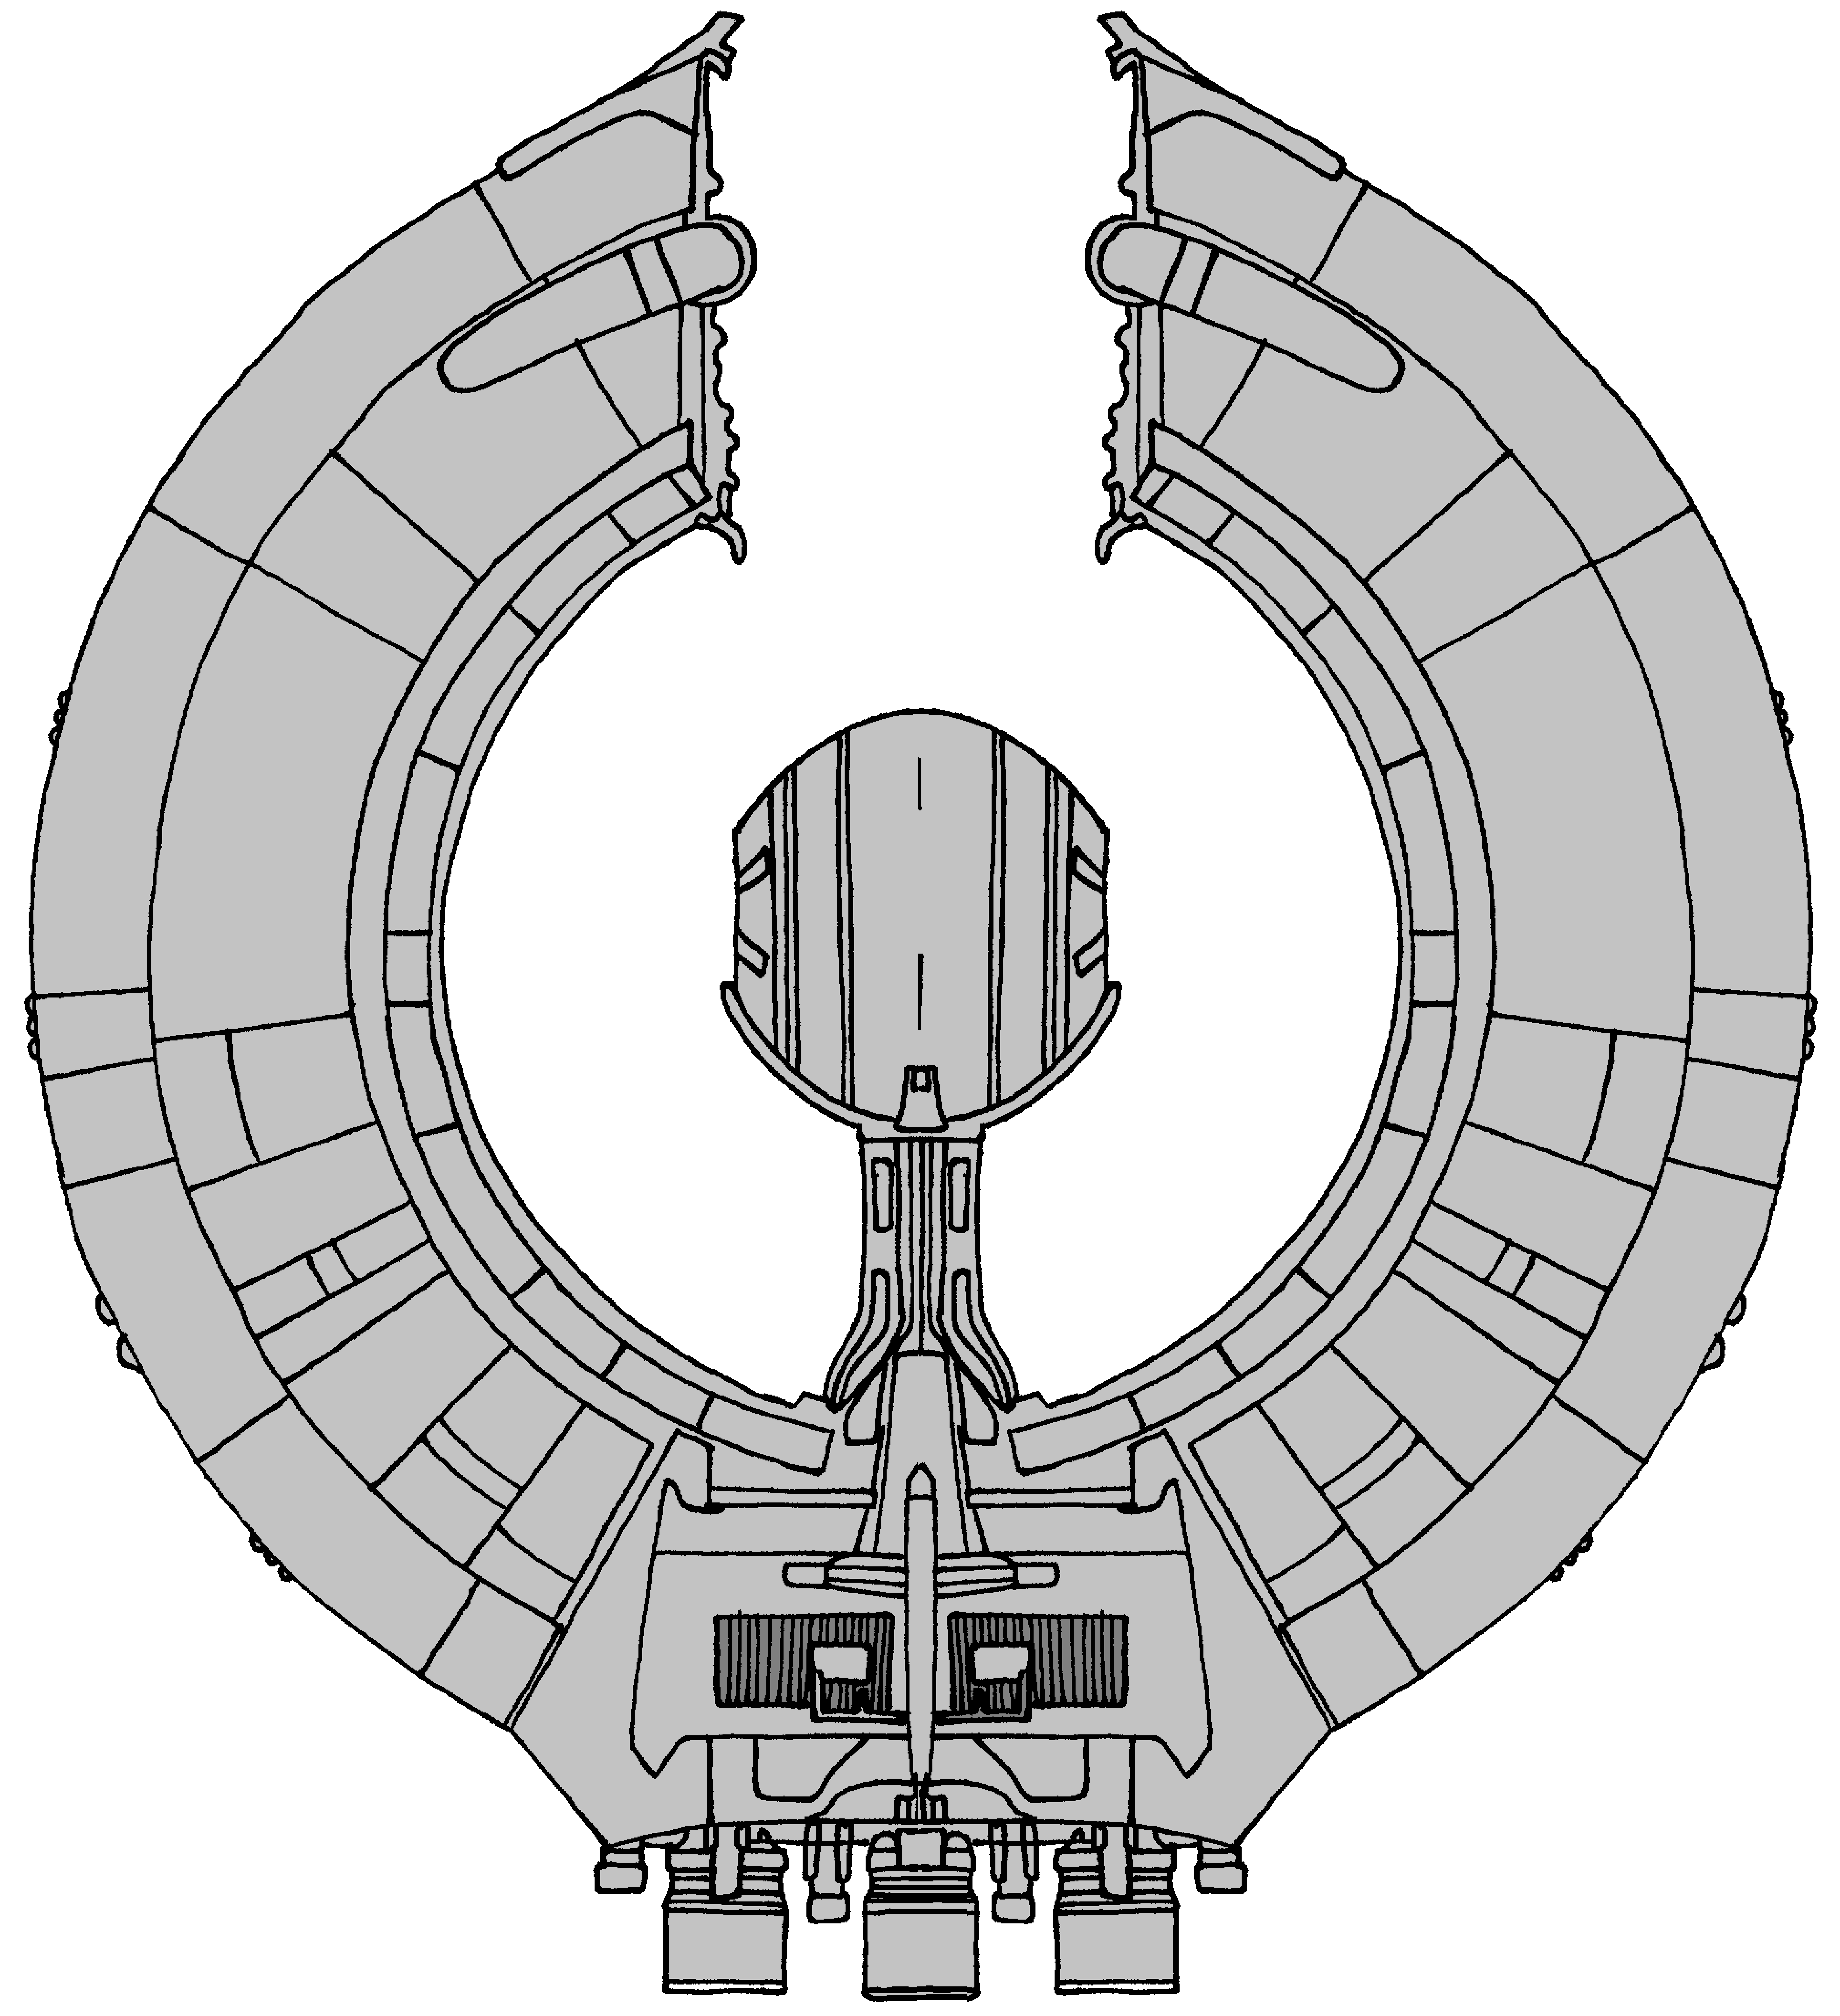 Space And Scifi Things With Zmodeler: Lucrehulk Class Battle Ship